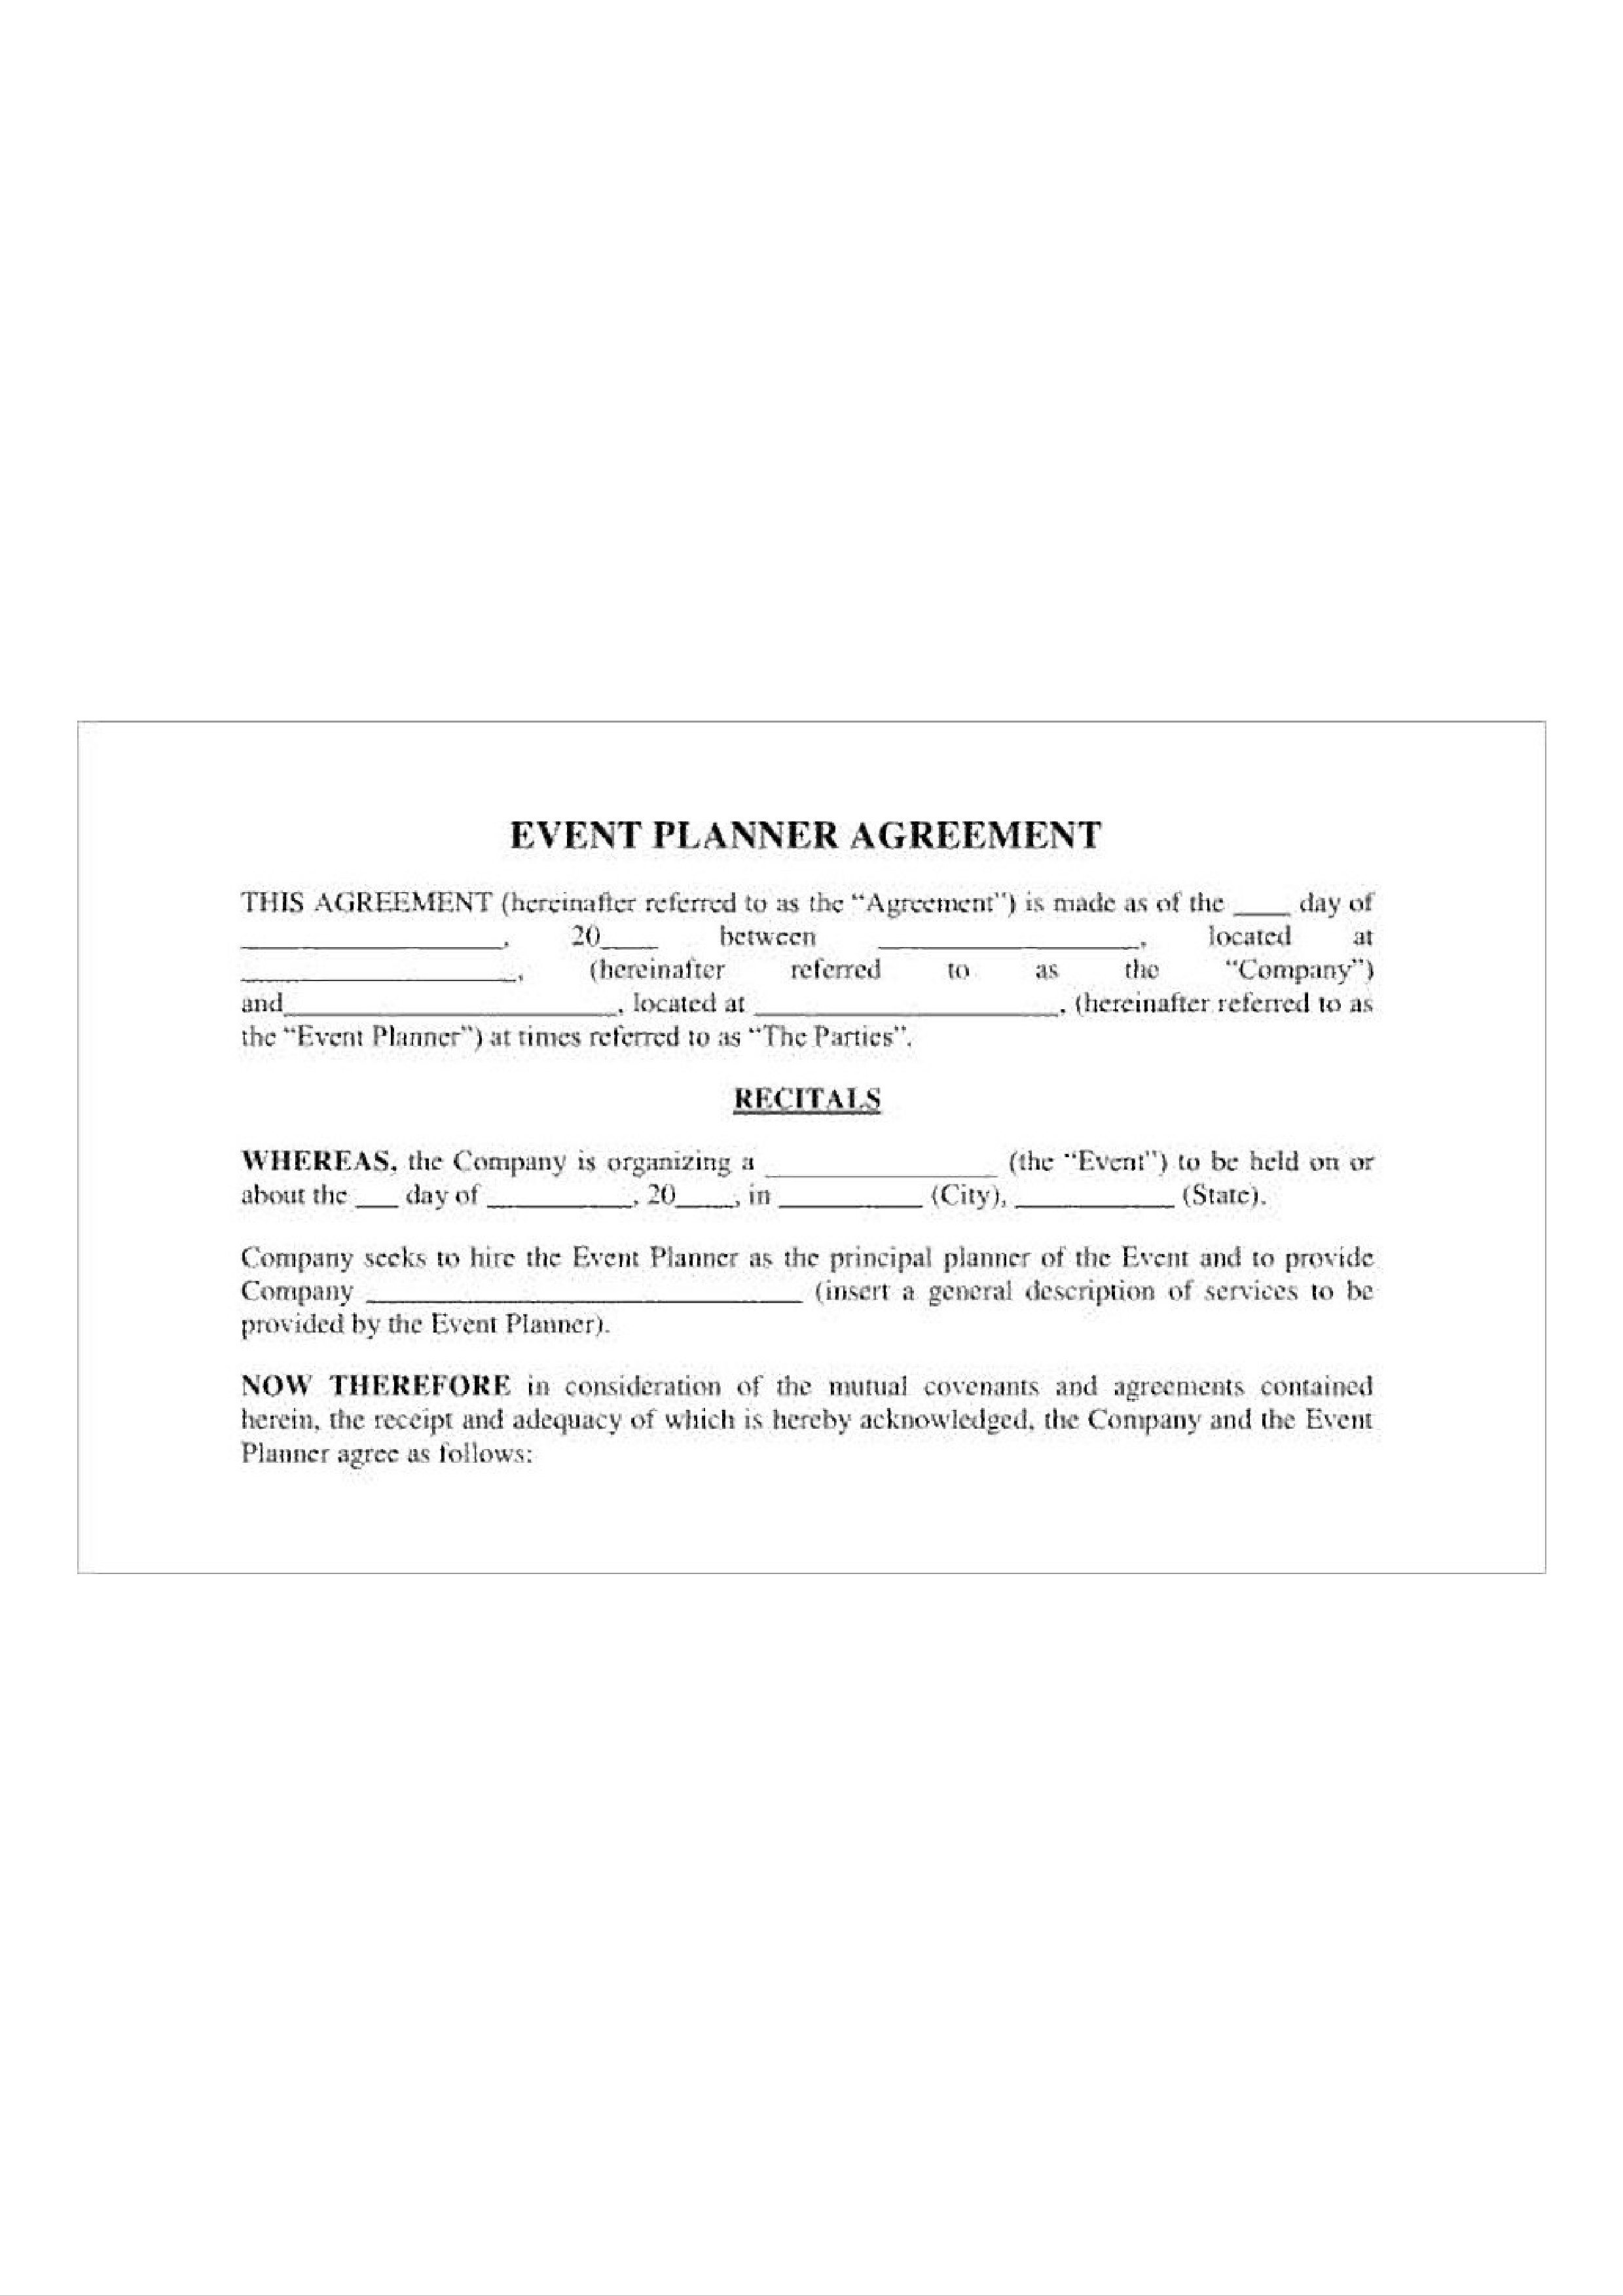 Event Planner Agreement main image